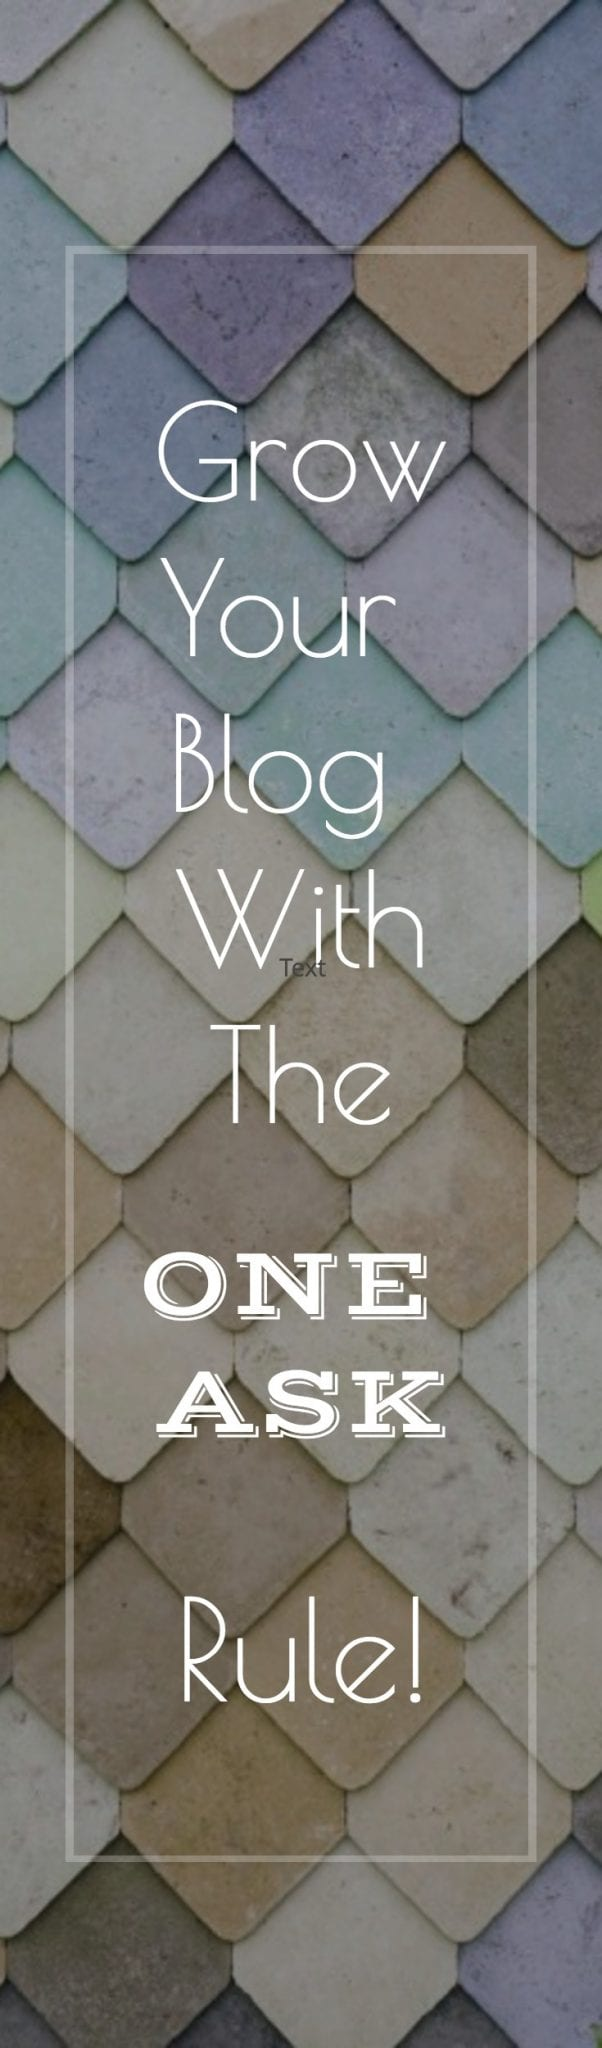 """Grow Your Blog With the """"One Ask"""" Rule! 